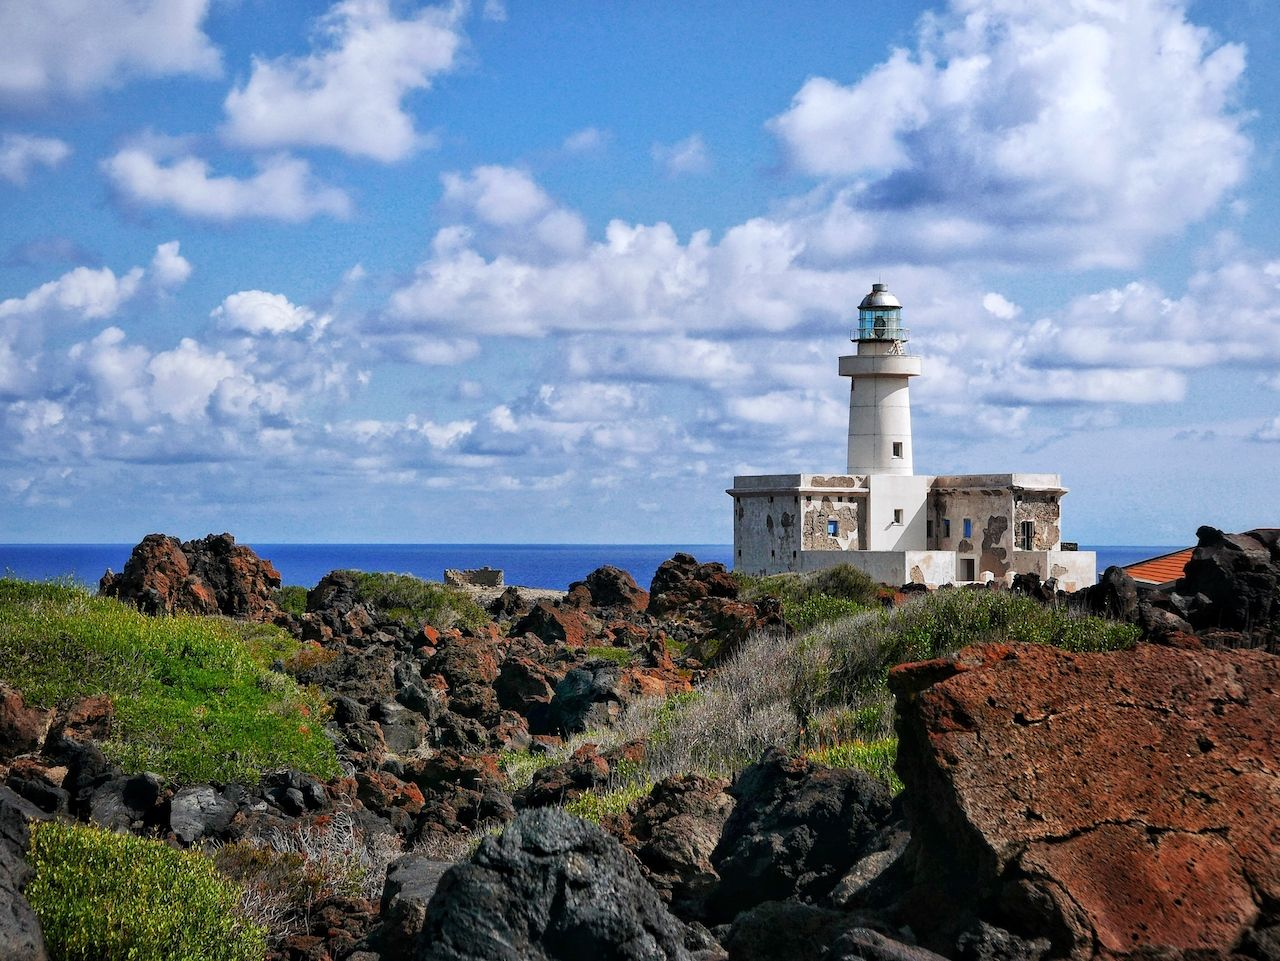 Lighthouse on Pantelleria's Island, Italy